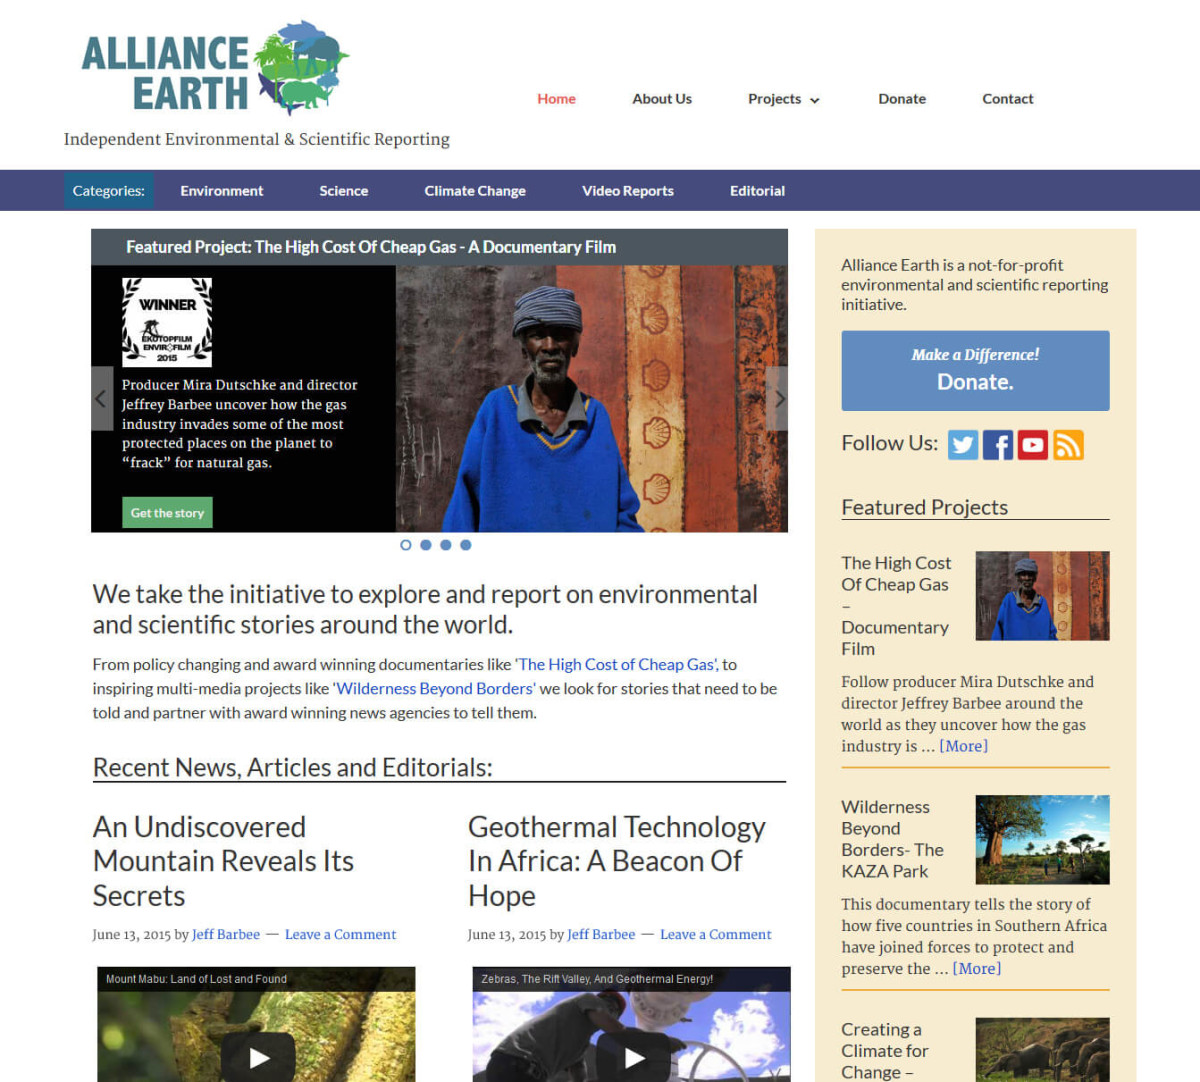 AllianceEarth.org Website